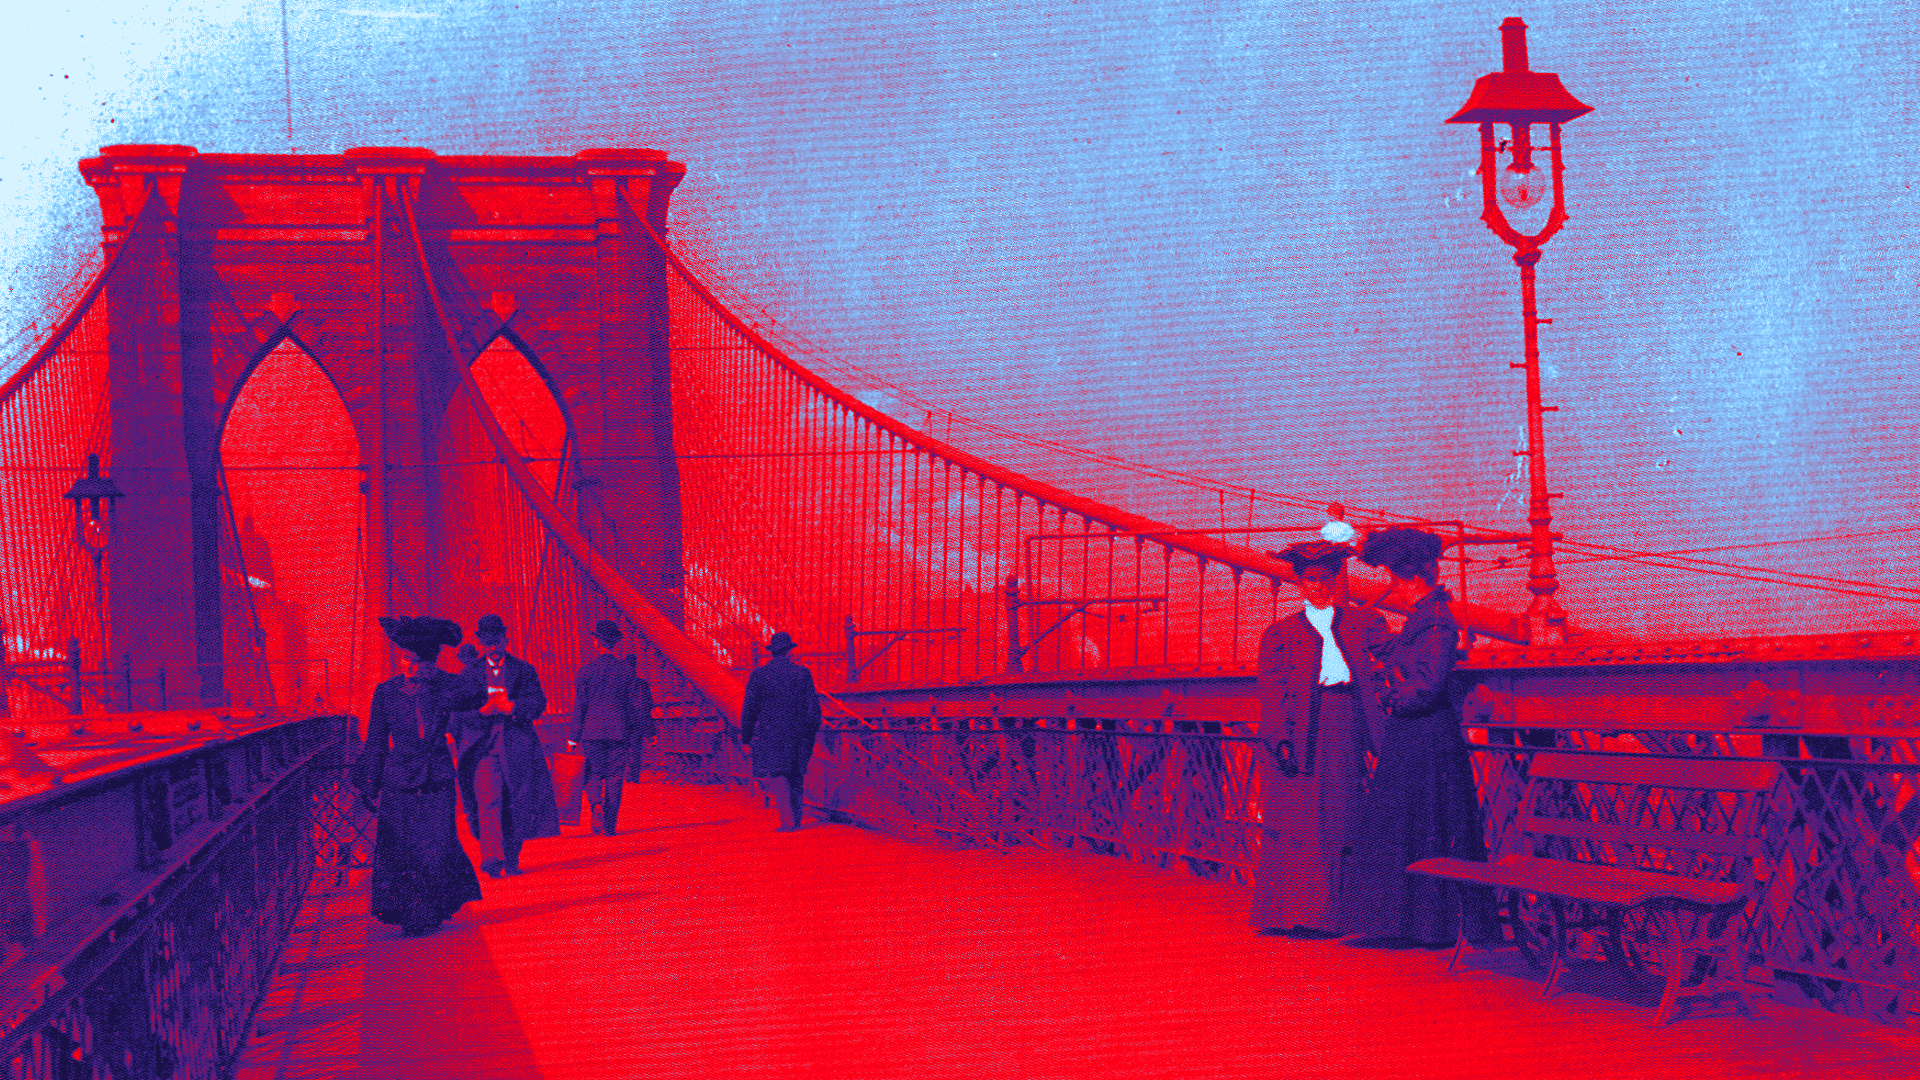 Brooklyn Bridge, 1890s